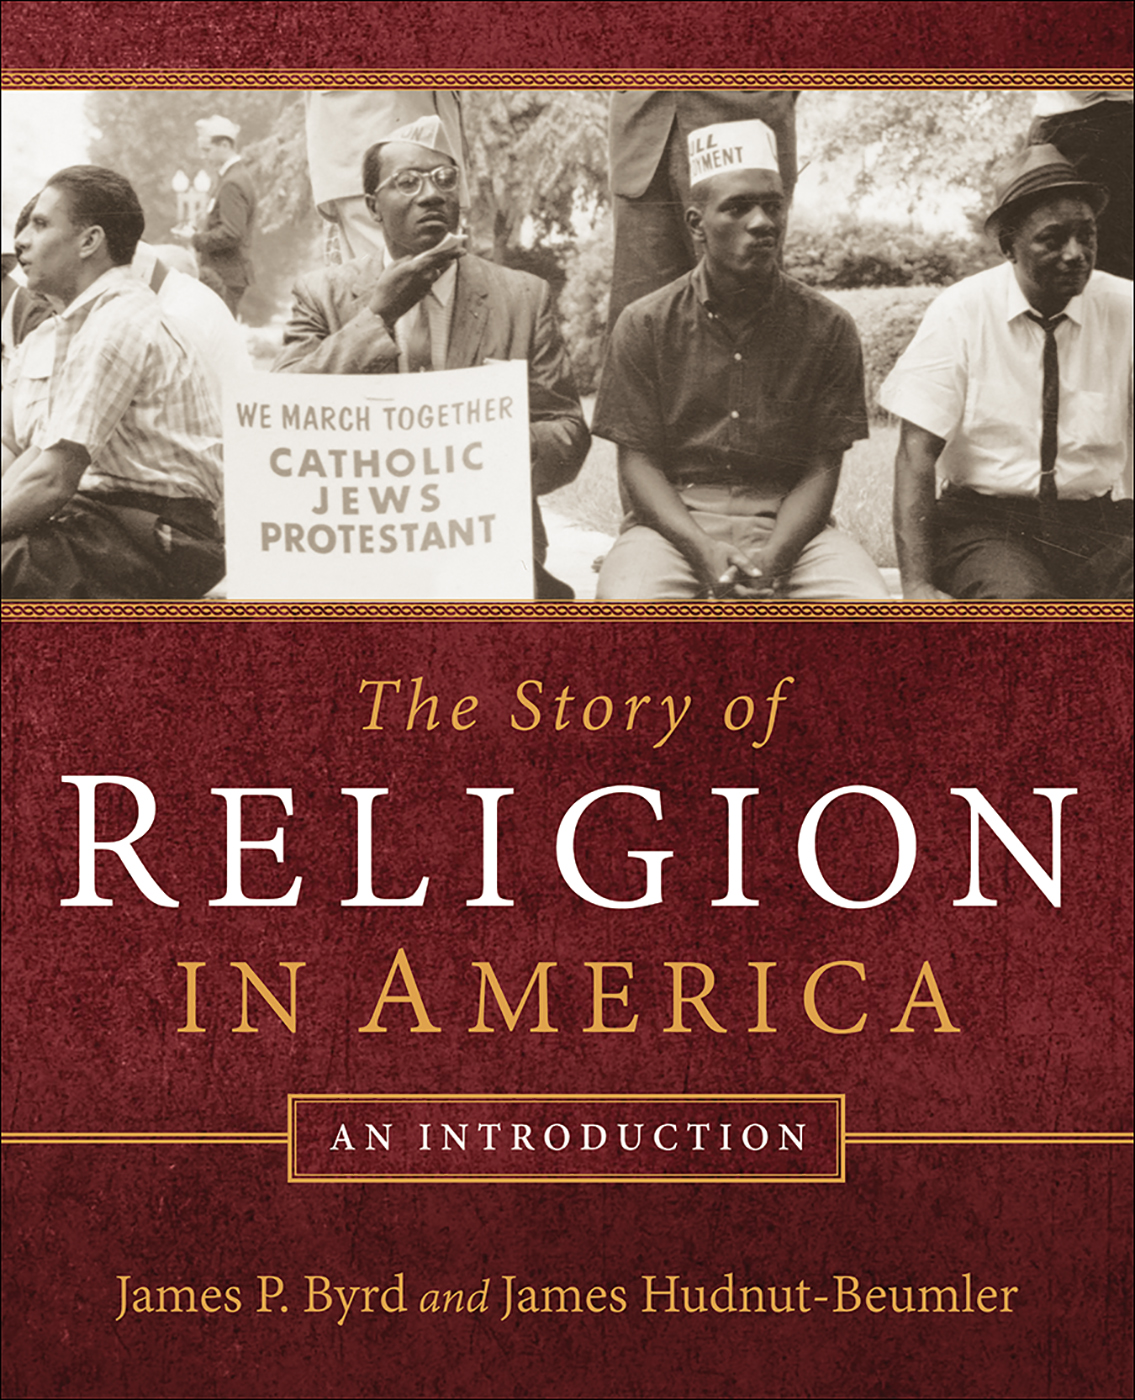 The Story of Religion in America